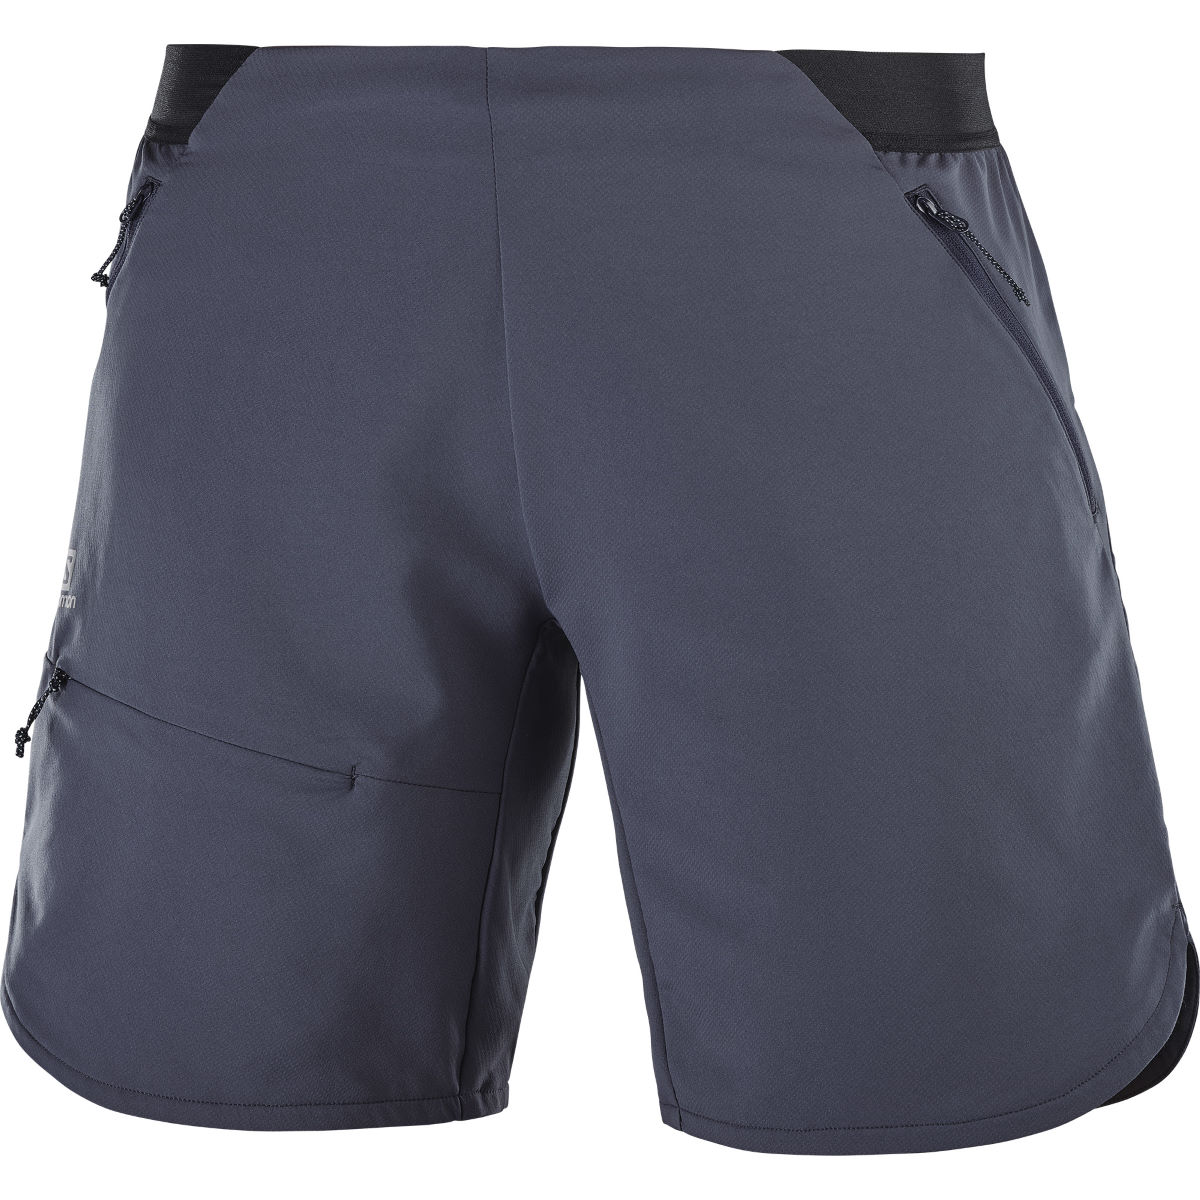 Salomon Women's Outspeed Short   Shorts